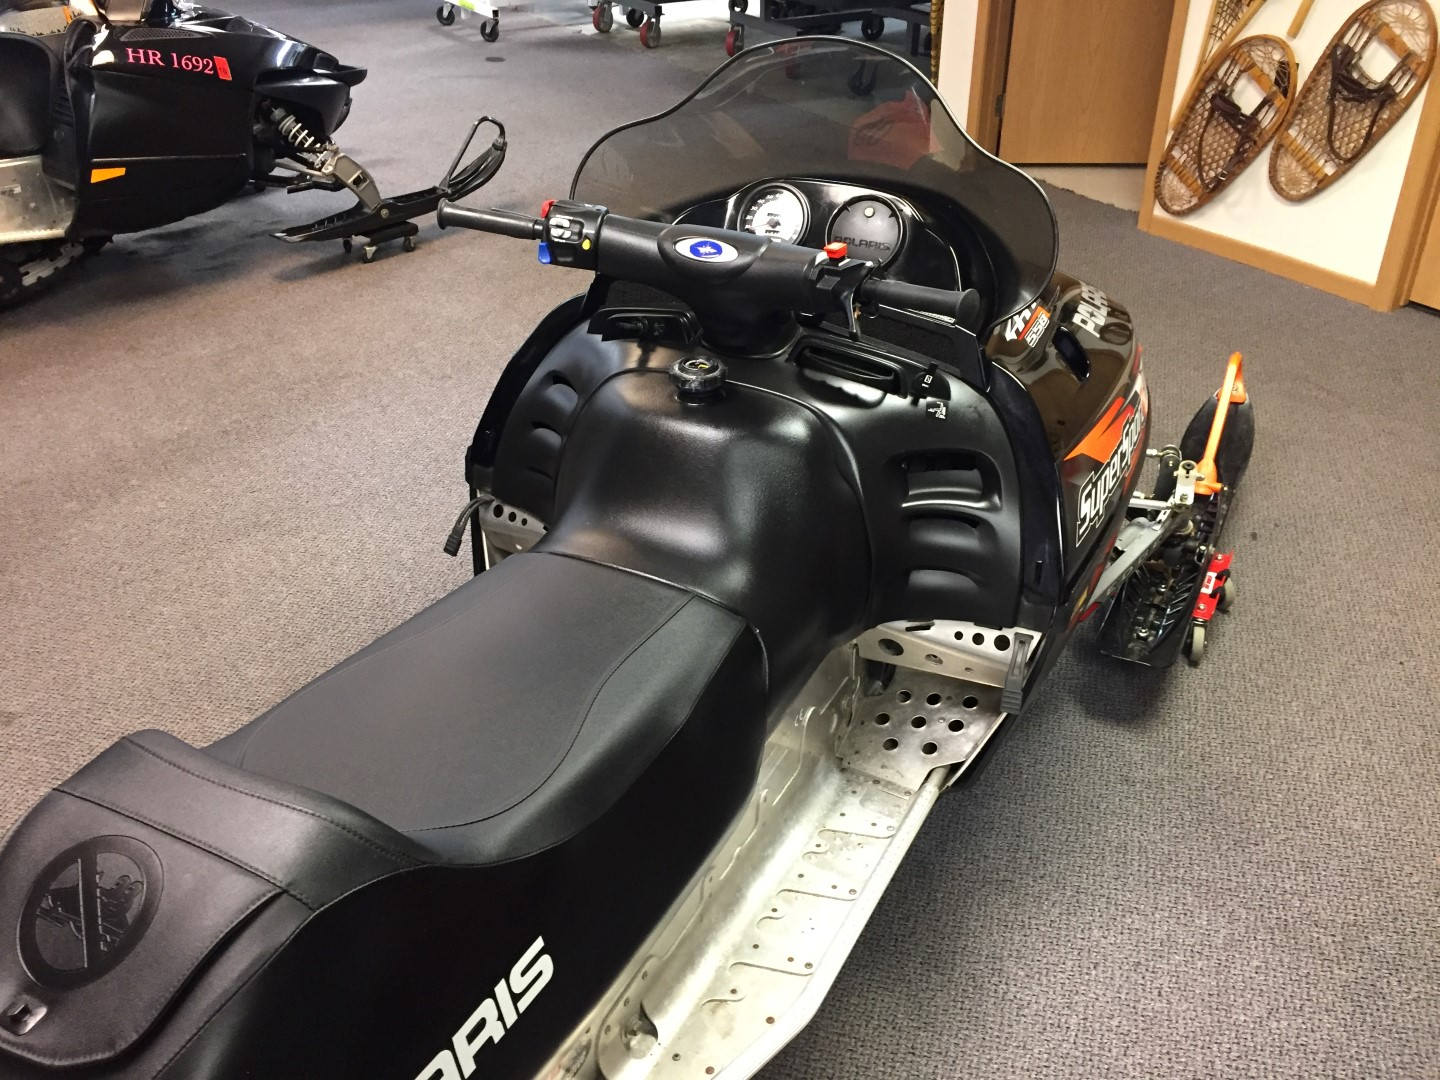 2005 polaris supersport 550 Deluxe track for sale seaberg motorsports crosslake MN sale great condition st cloud mn